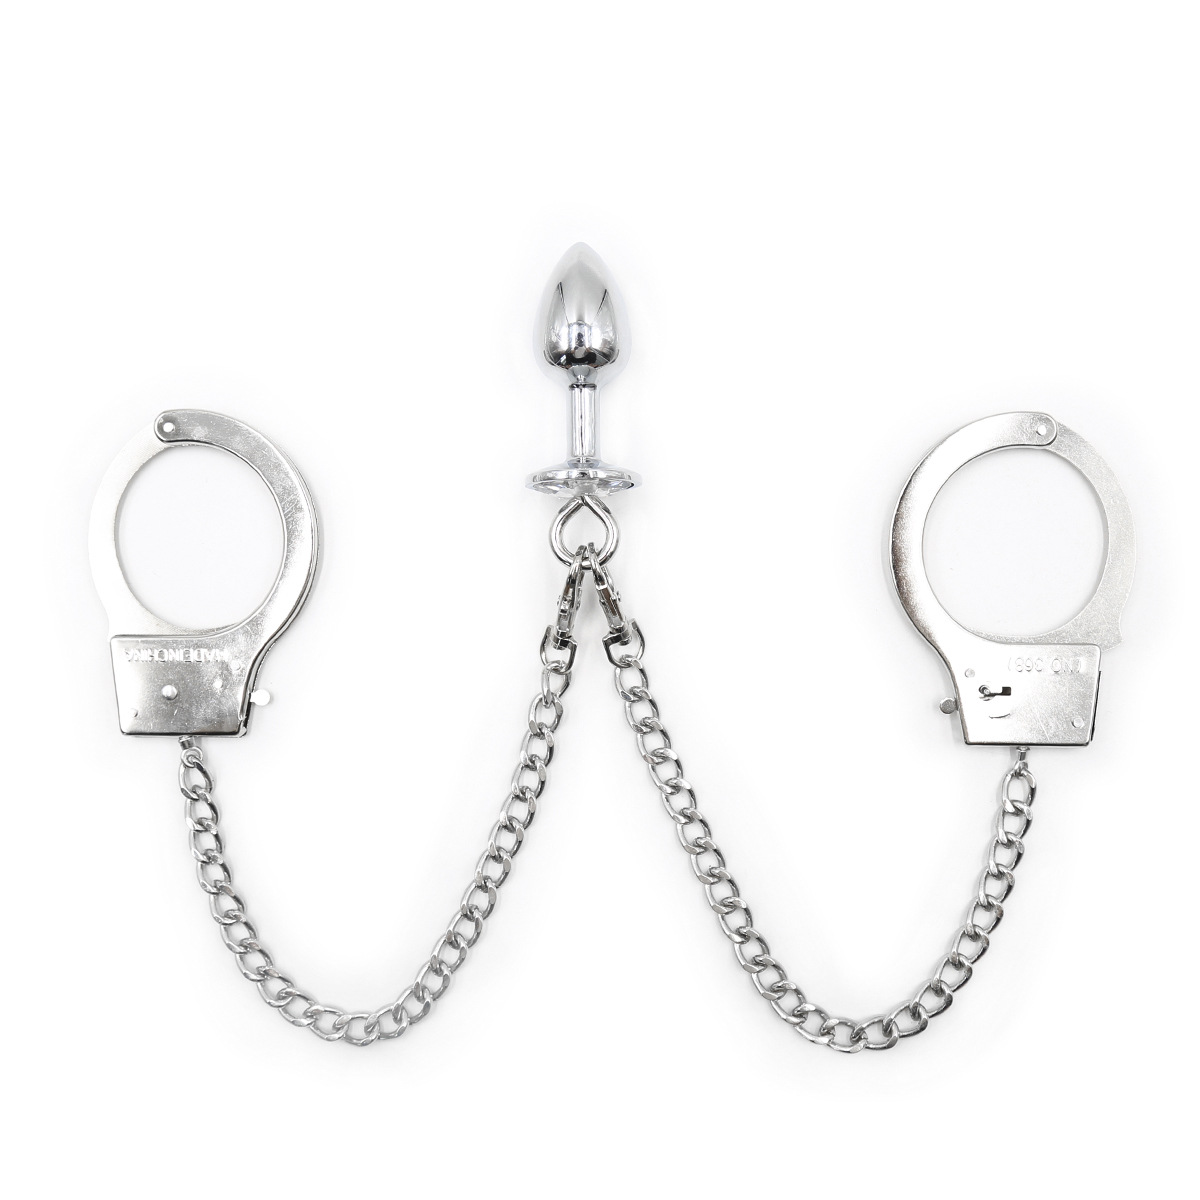 BDSM Bondage Iron Chain Metal Handcuffs With Metal Trumpet Anal Plug Slave Restraints Games Sex Toys For Couples Erotic